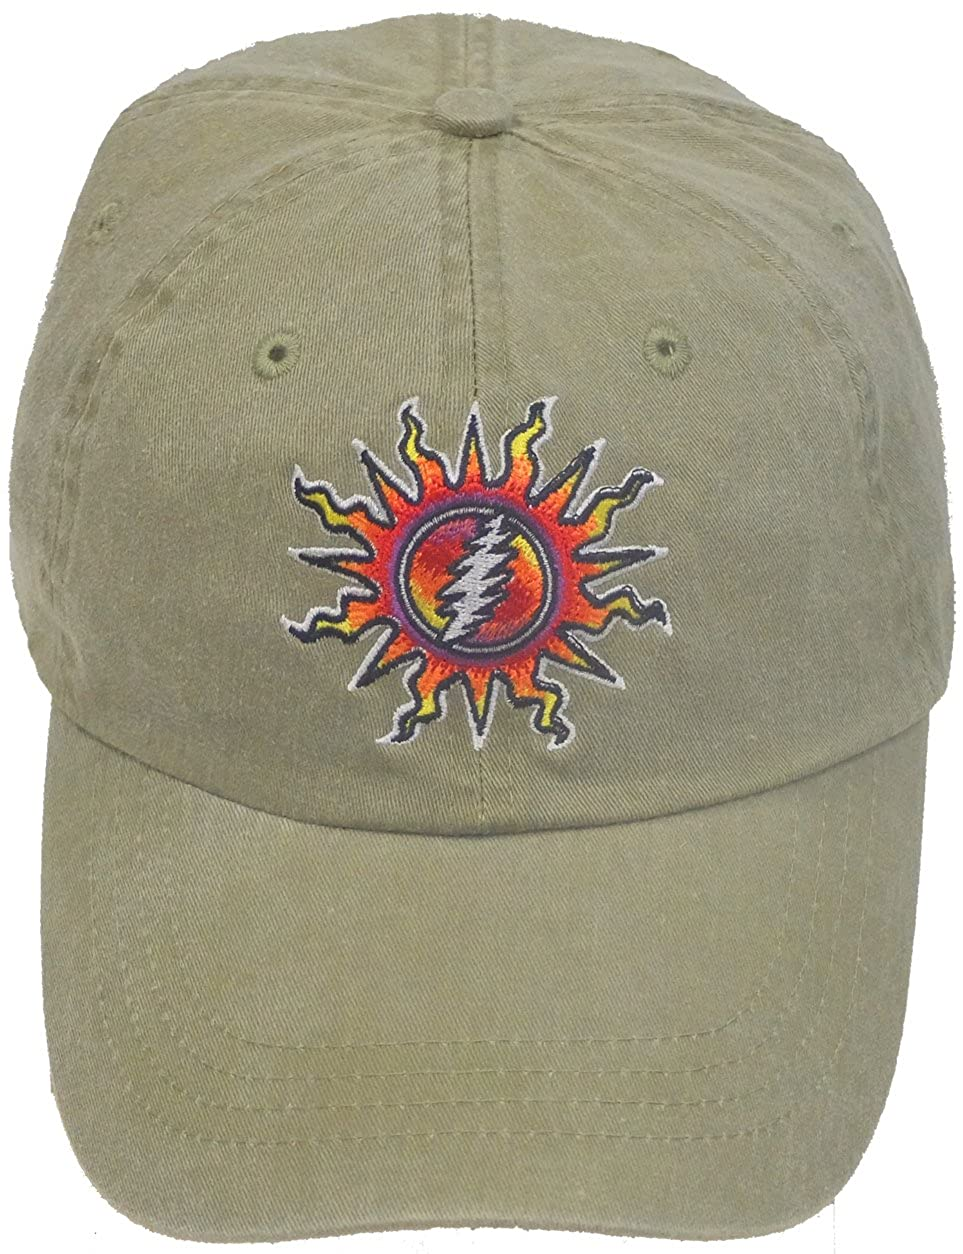 Grateful Dead Embroidered Sunshine Daydream Tan Cap by Dye The Sky DTS-SSDDTAN-HAT